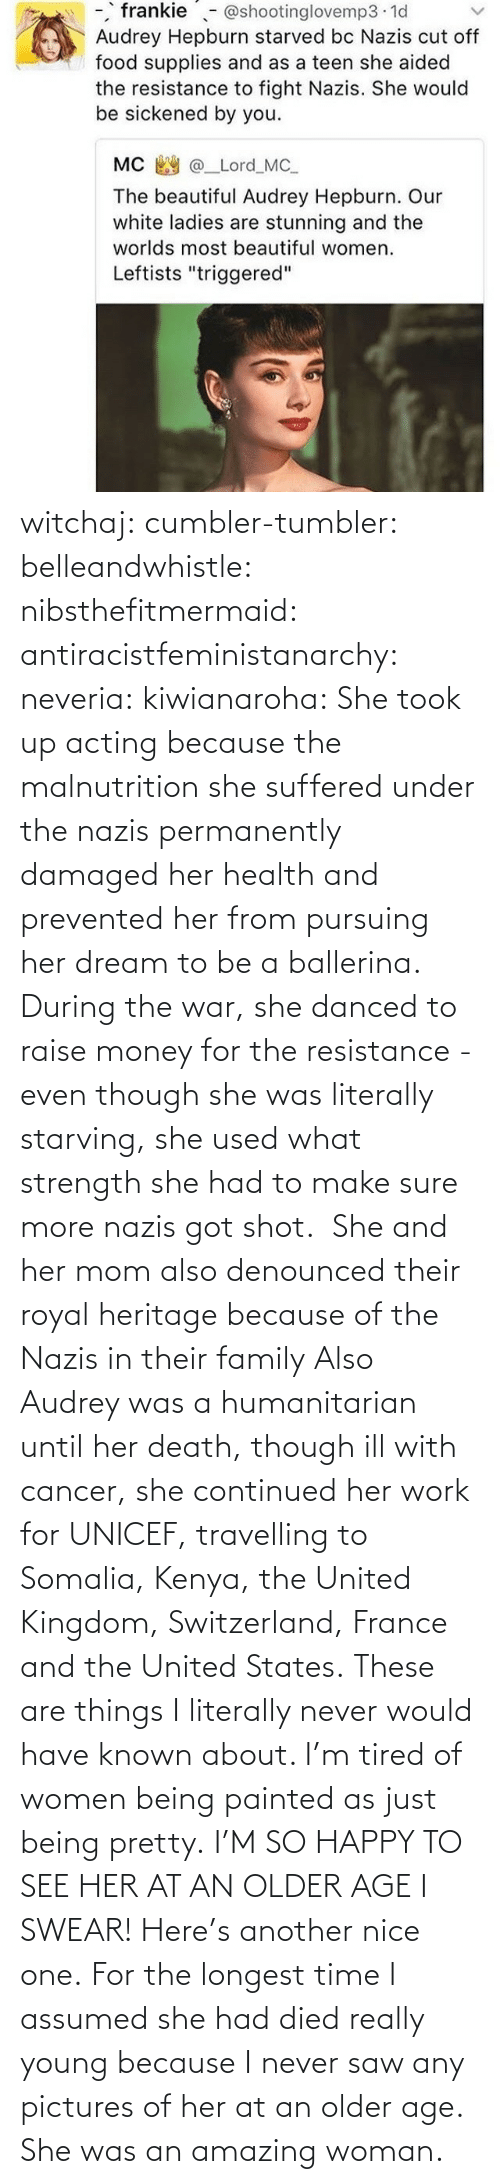 health: witchaj: cumbler-tumbler:  belleandwhistle:  nibsthefitmermaid:  antiracistfeministanarchy:  neveria:  kiwianaroha: She took up acting because the malnutrition she suffered under the nazis permanently damaged her health and prevented her from pursuing her dream to be a ballerina. During the war, she danced to raise money for the resistance - even though she was literally starving, she used what strength she had to make sure more nazis got shot.  She and her mom also denounced their royal heritage because of the Nazis in their family  Also Audrey was a humanitarian until her death, though ill with cancer, she continued her work for UNICEF, travelling to Somalia, Kenya, the United Kingdom, Switzerland, France and the United States.  These are things I literally never would have known about. I'm tired of women being painted as just being pretty.  I'M SO HAPPY TO SEE HER AT AN OLDER AGE I SWEAR!  Here's another nice one.   For the longest time I assumed she had died really young because I never saw any pictures of her at an older age.  She was an amazing woman.